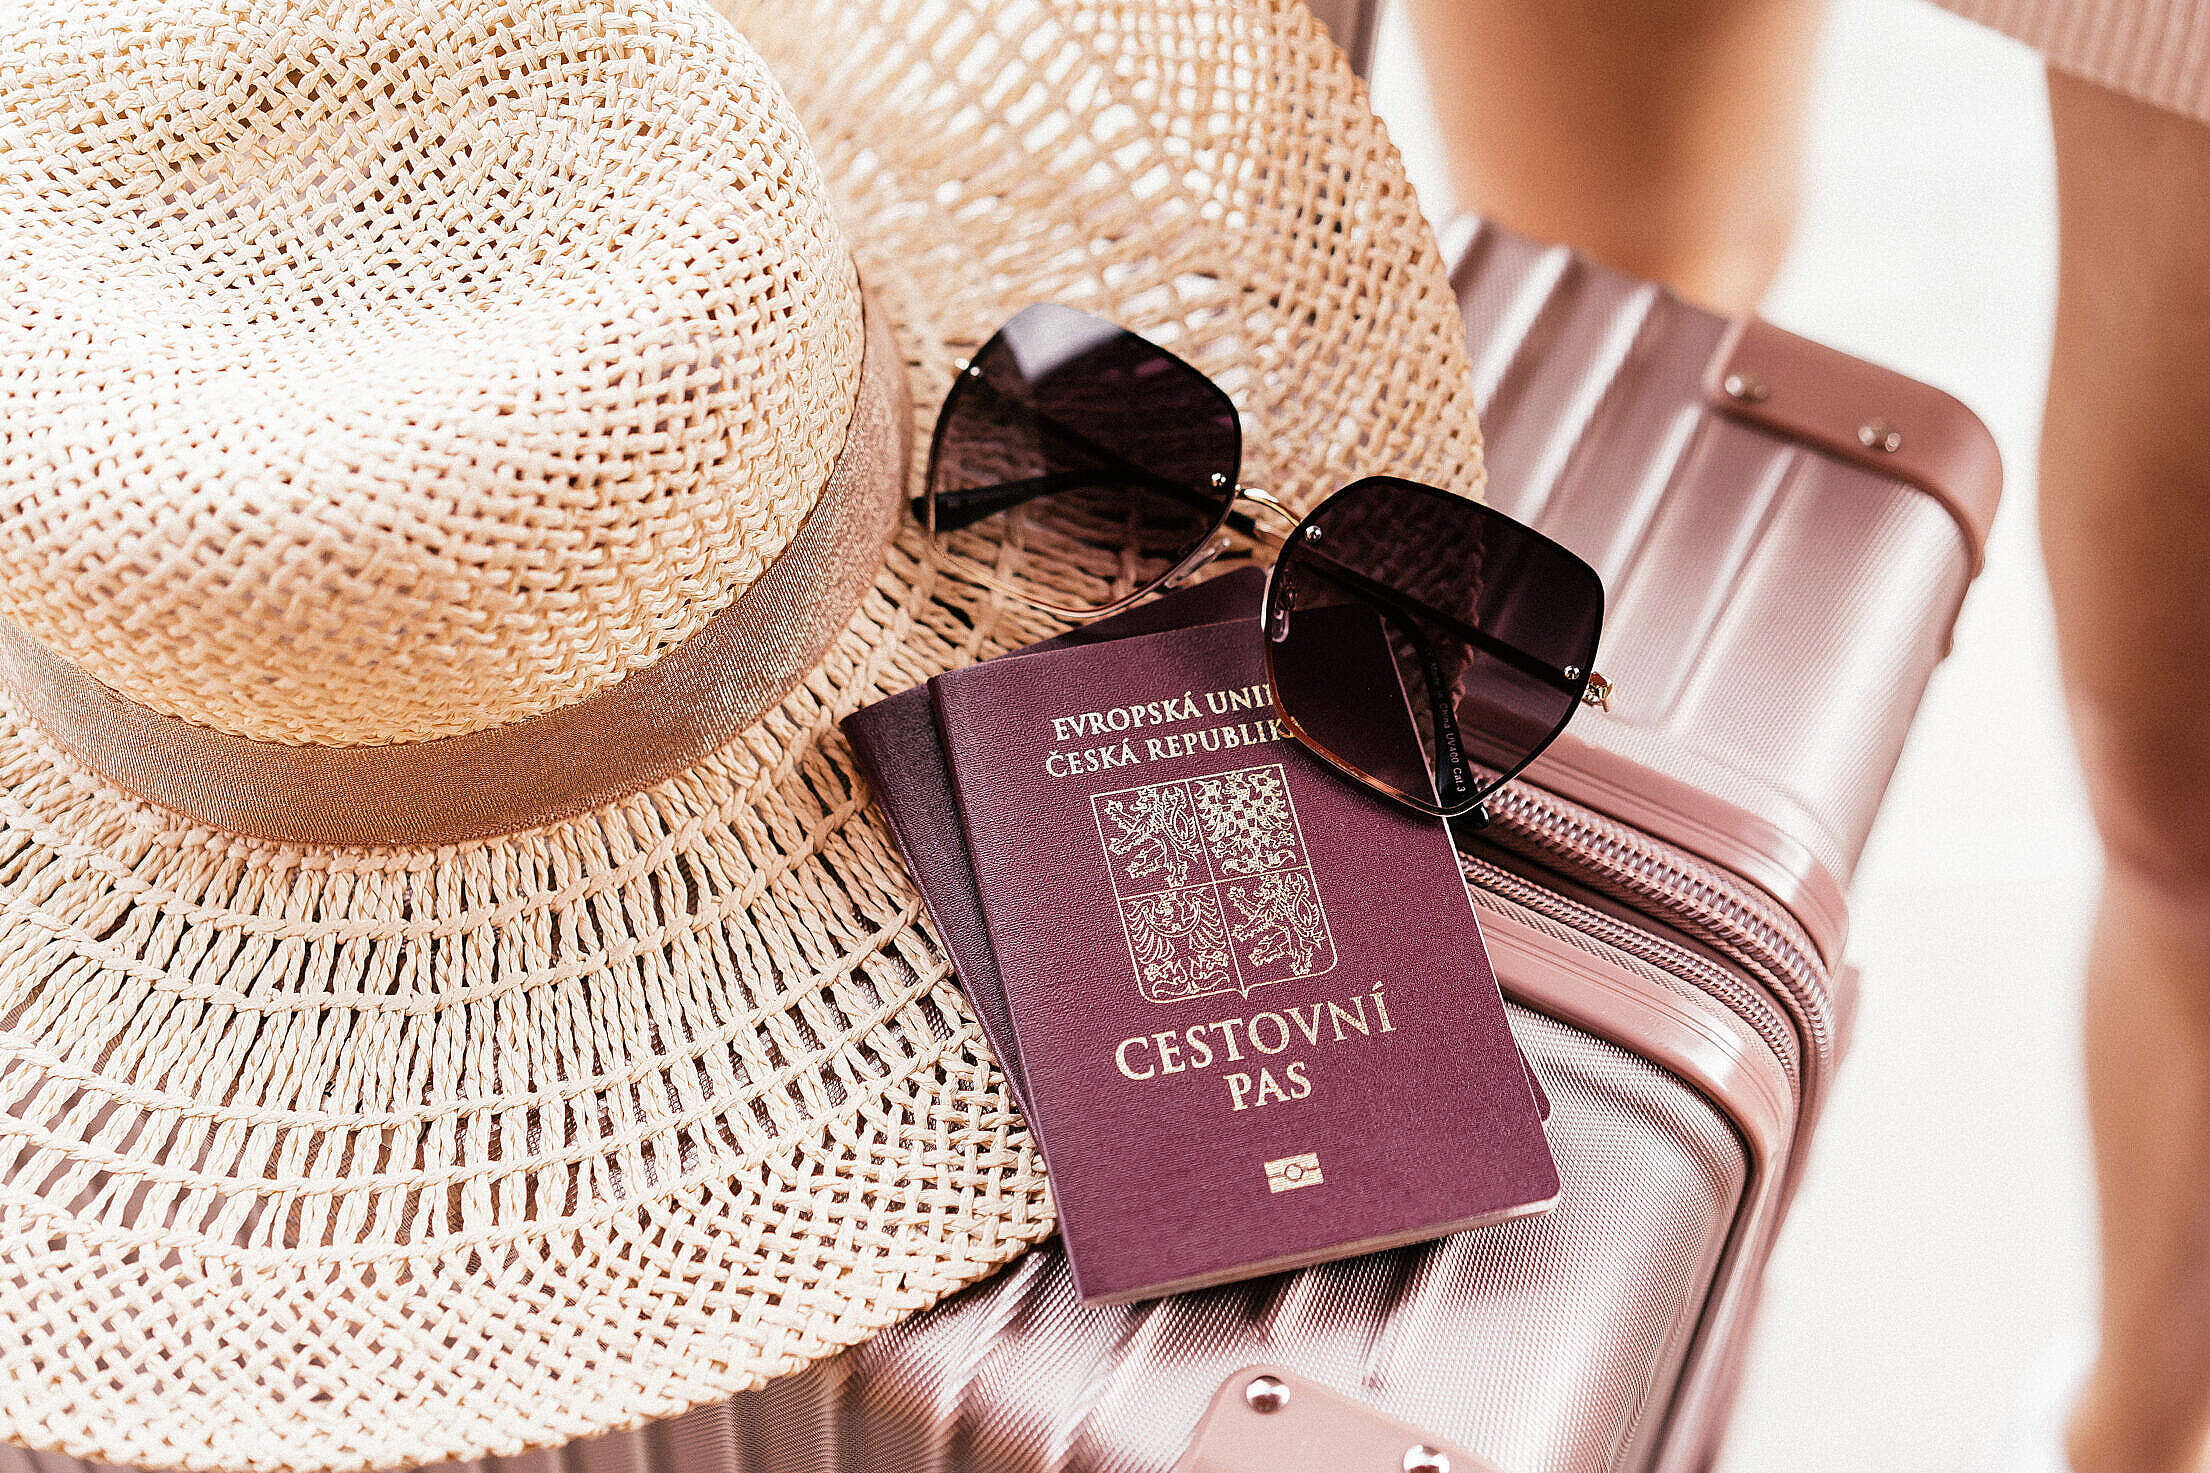 Czech Passport with Sunglasses and Hat on a Suitcase Free Stock Photo